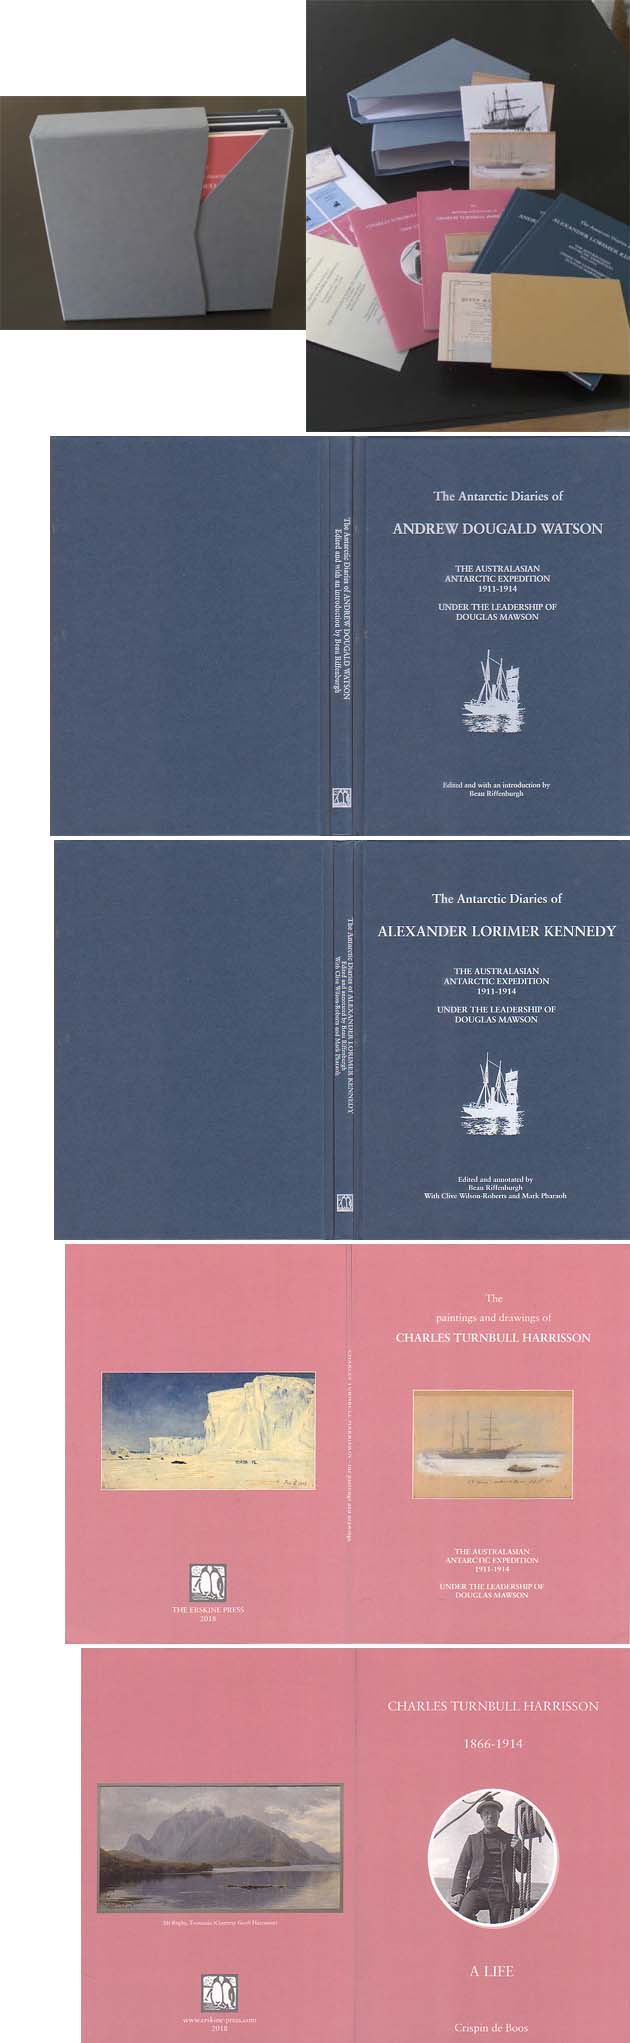 The Antarctic Diaries of Andrew Dougald Watson with The Antarctic Diaries of Alexander Lorimer Kennedy with Charles Turnbull Harrisson: A Life with The Paintings and Drawings of Charles Turnbull Harrisson: Riffenburgh, Beau ed. & de Boos, Crispin